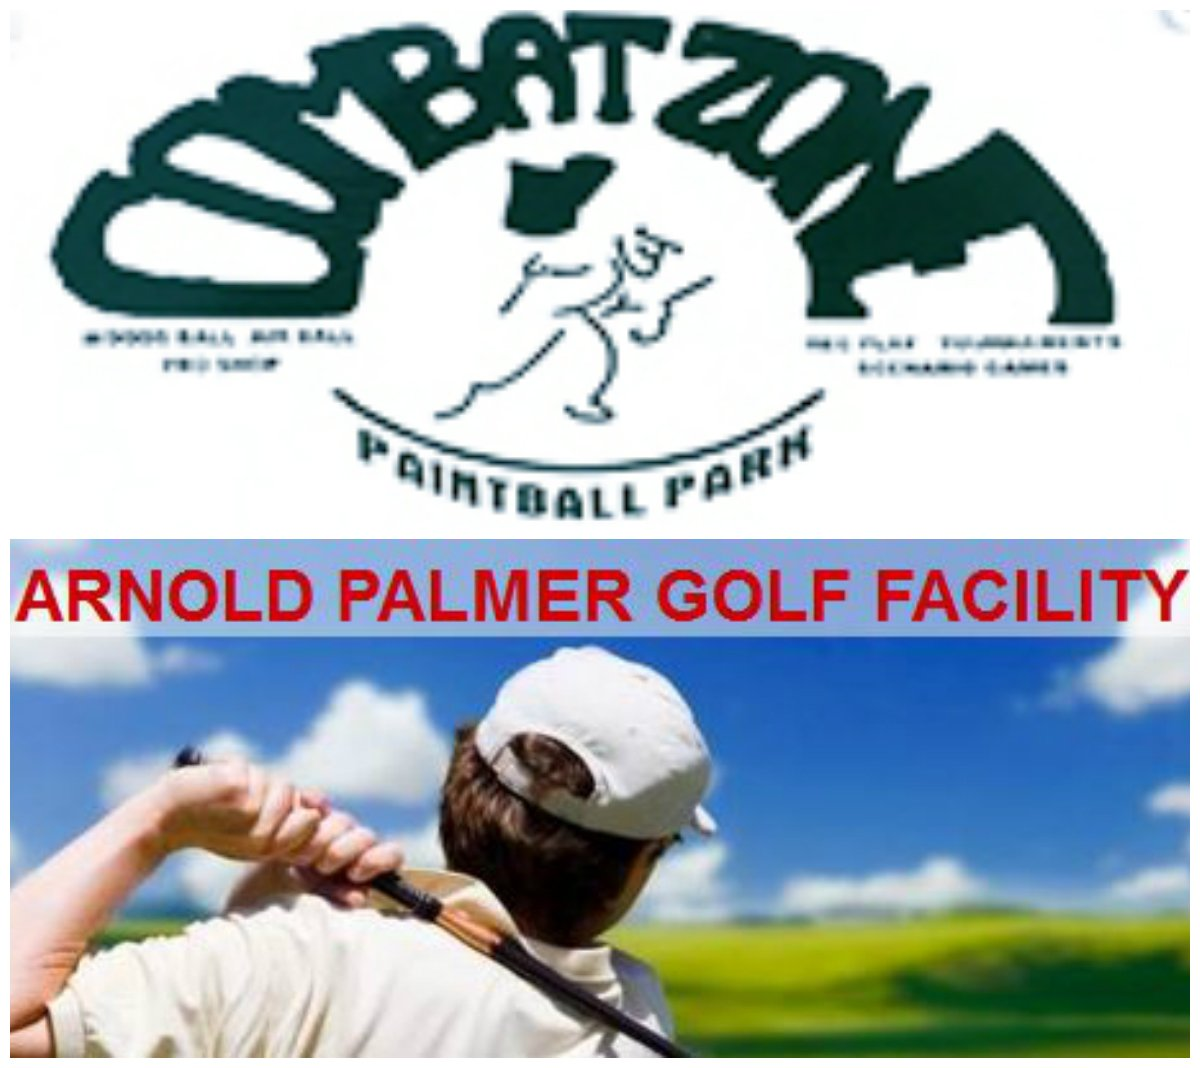 The Combat Zone Paintball/Arnold Palmer Golf Facility